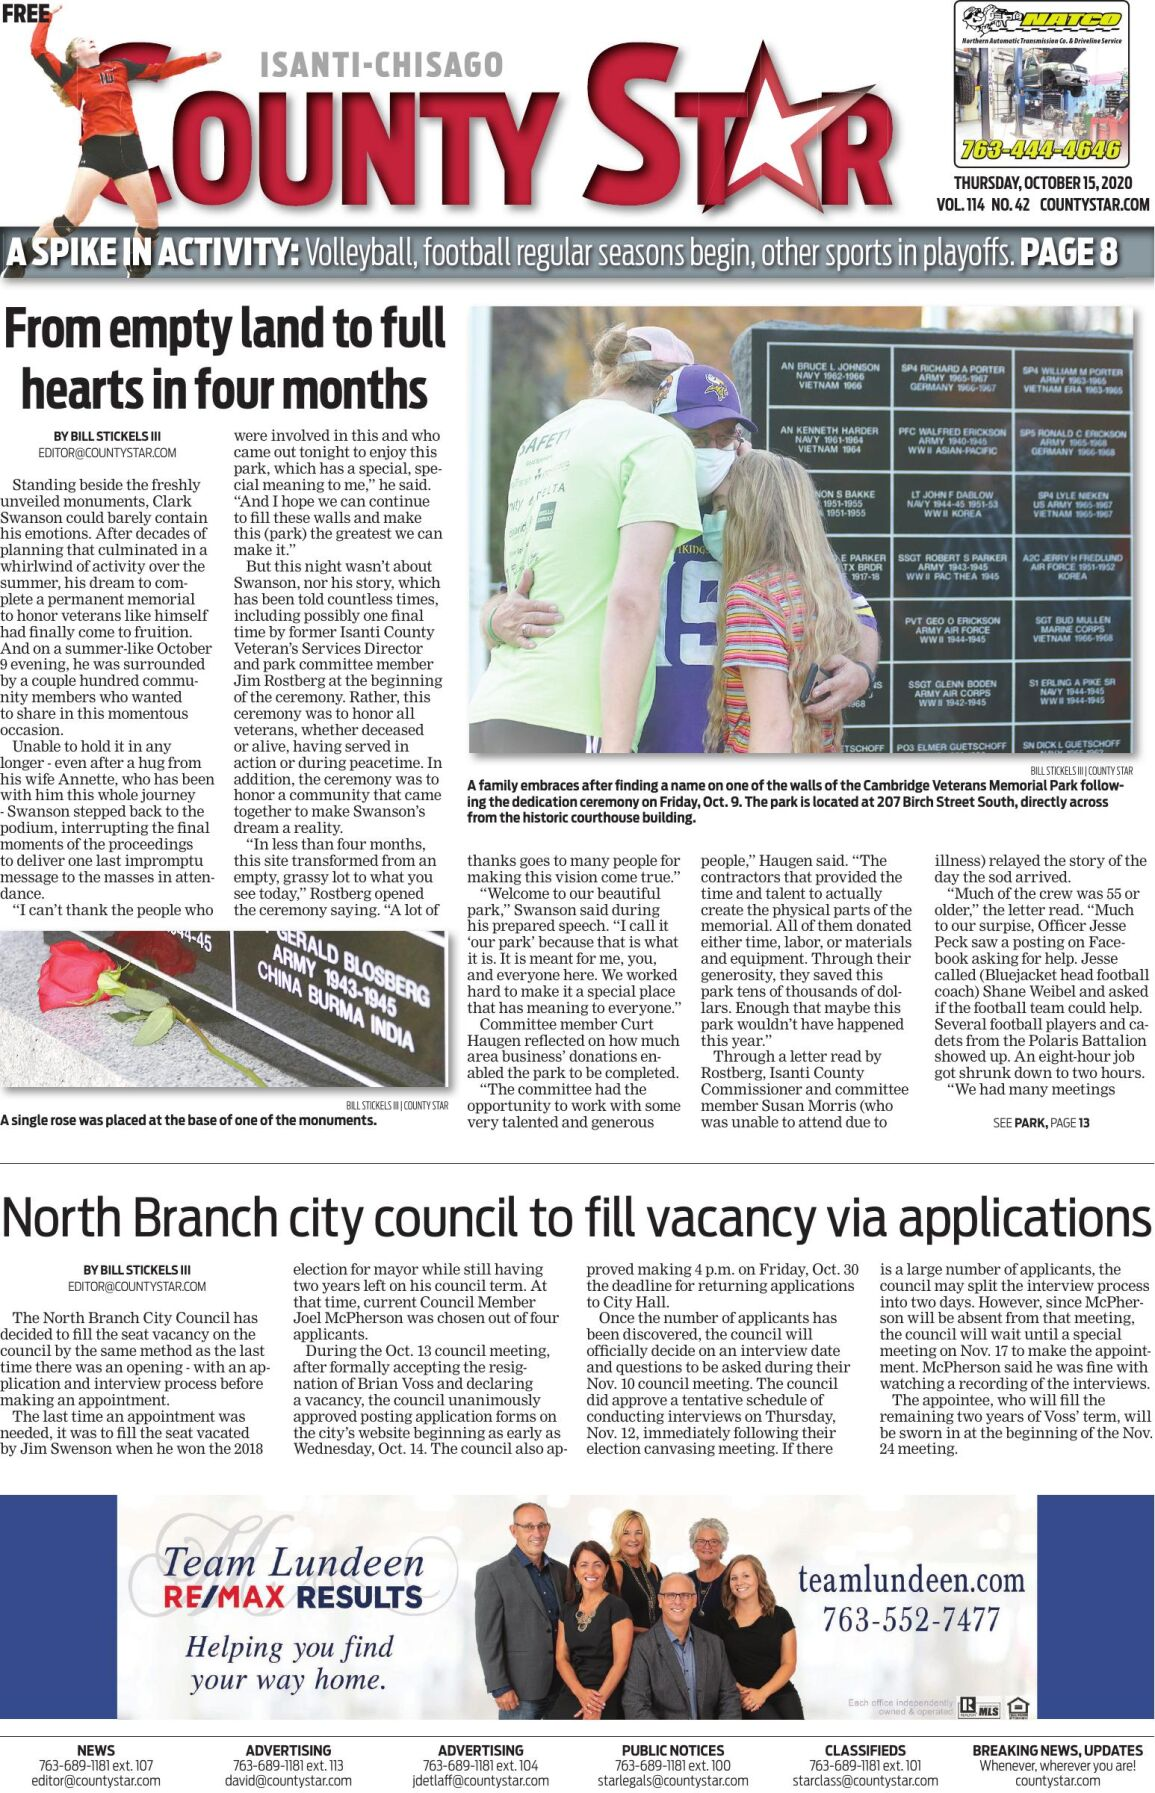 Isanti-Chisago County Star October 15, 2020 e-edition